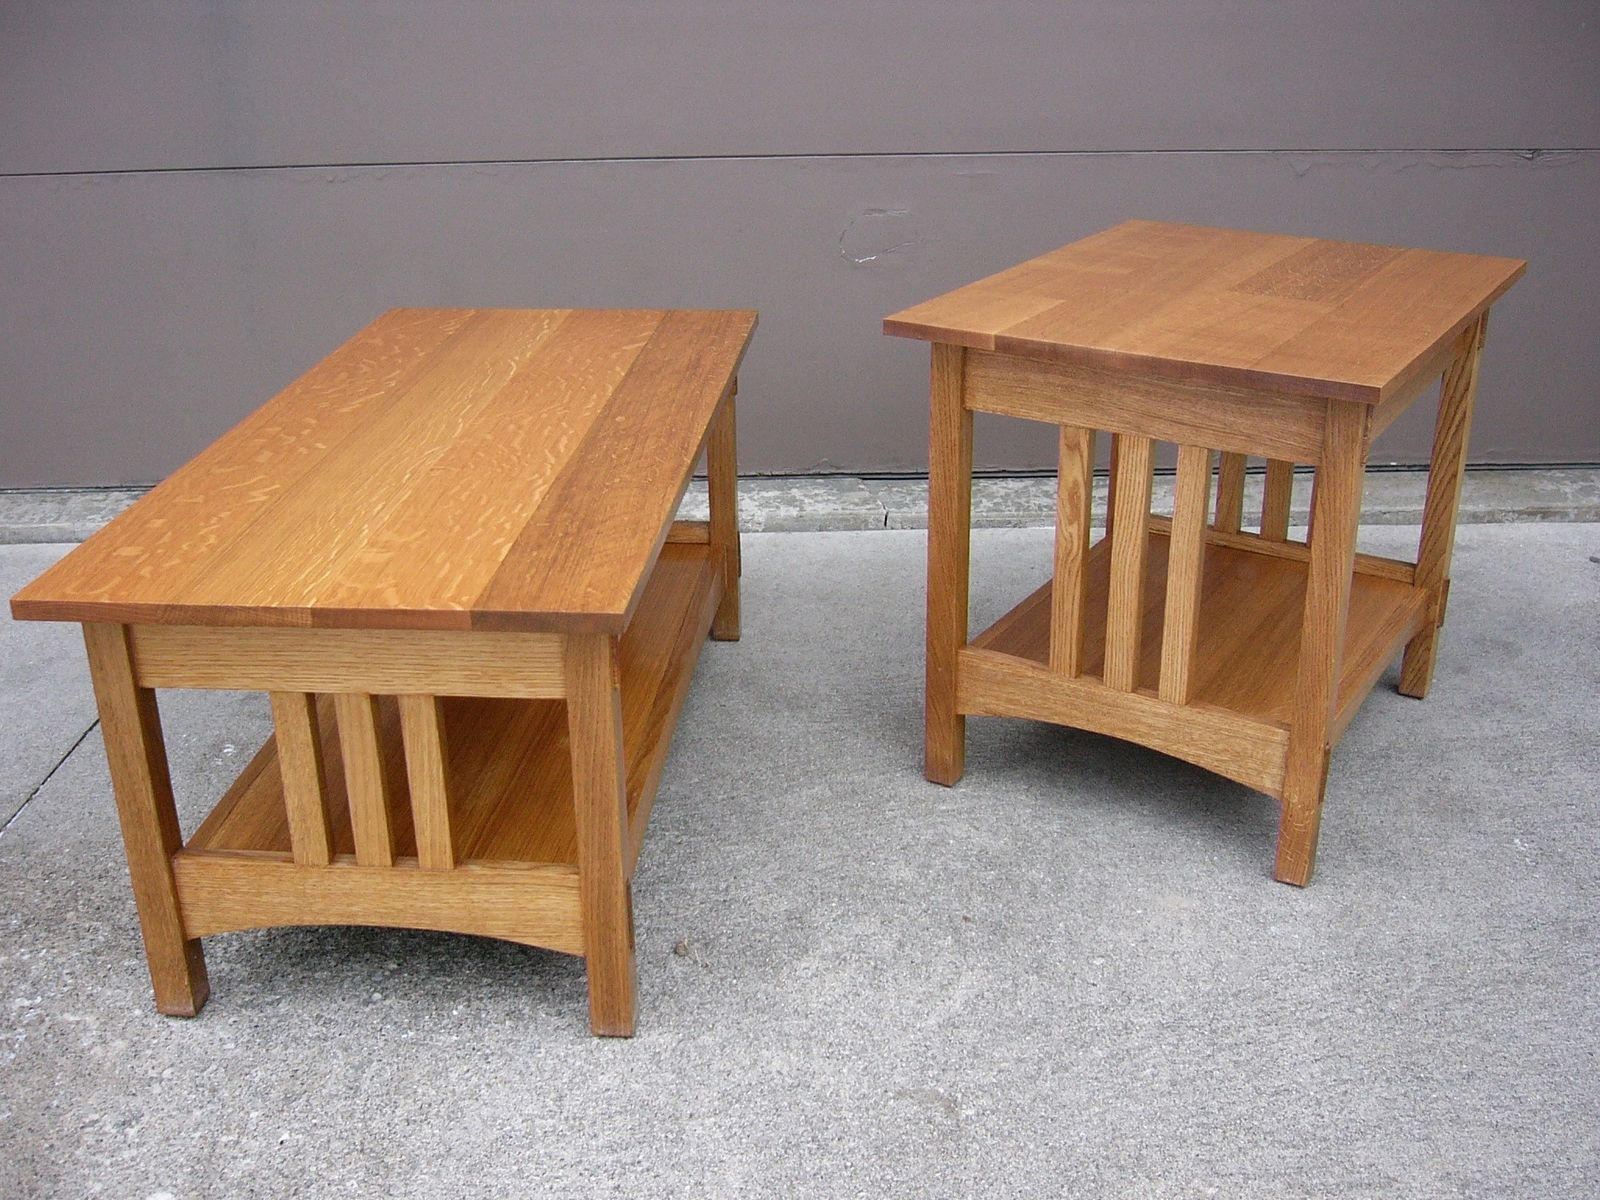 Mission Style Coffee Table Set 2 Sets From Wood Quartersawn Oak Mission Style Coffee Table And End Table (Image 5 of 9)